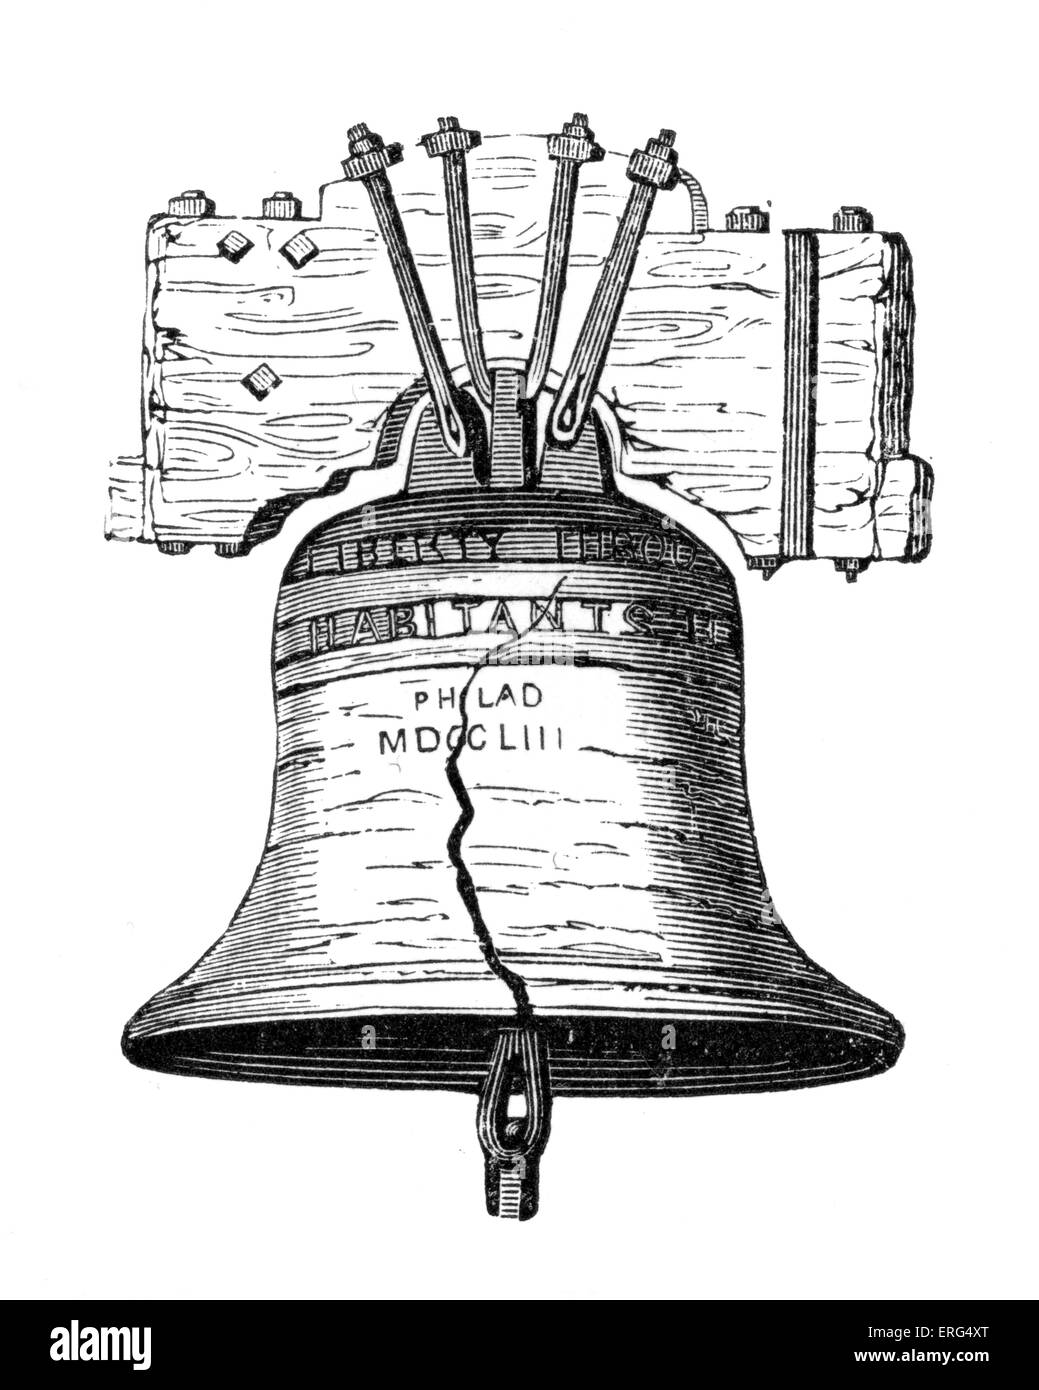 Liberty bell philadelphia pennsylvania one of the most liberty bell philadelphia pennsylvania one of the most prominent symbols of the american revolutionary war its most famous biocorpaavc Images